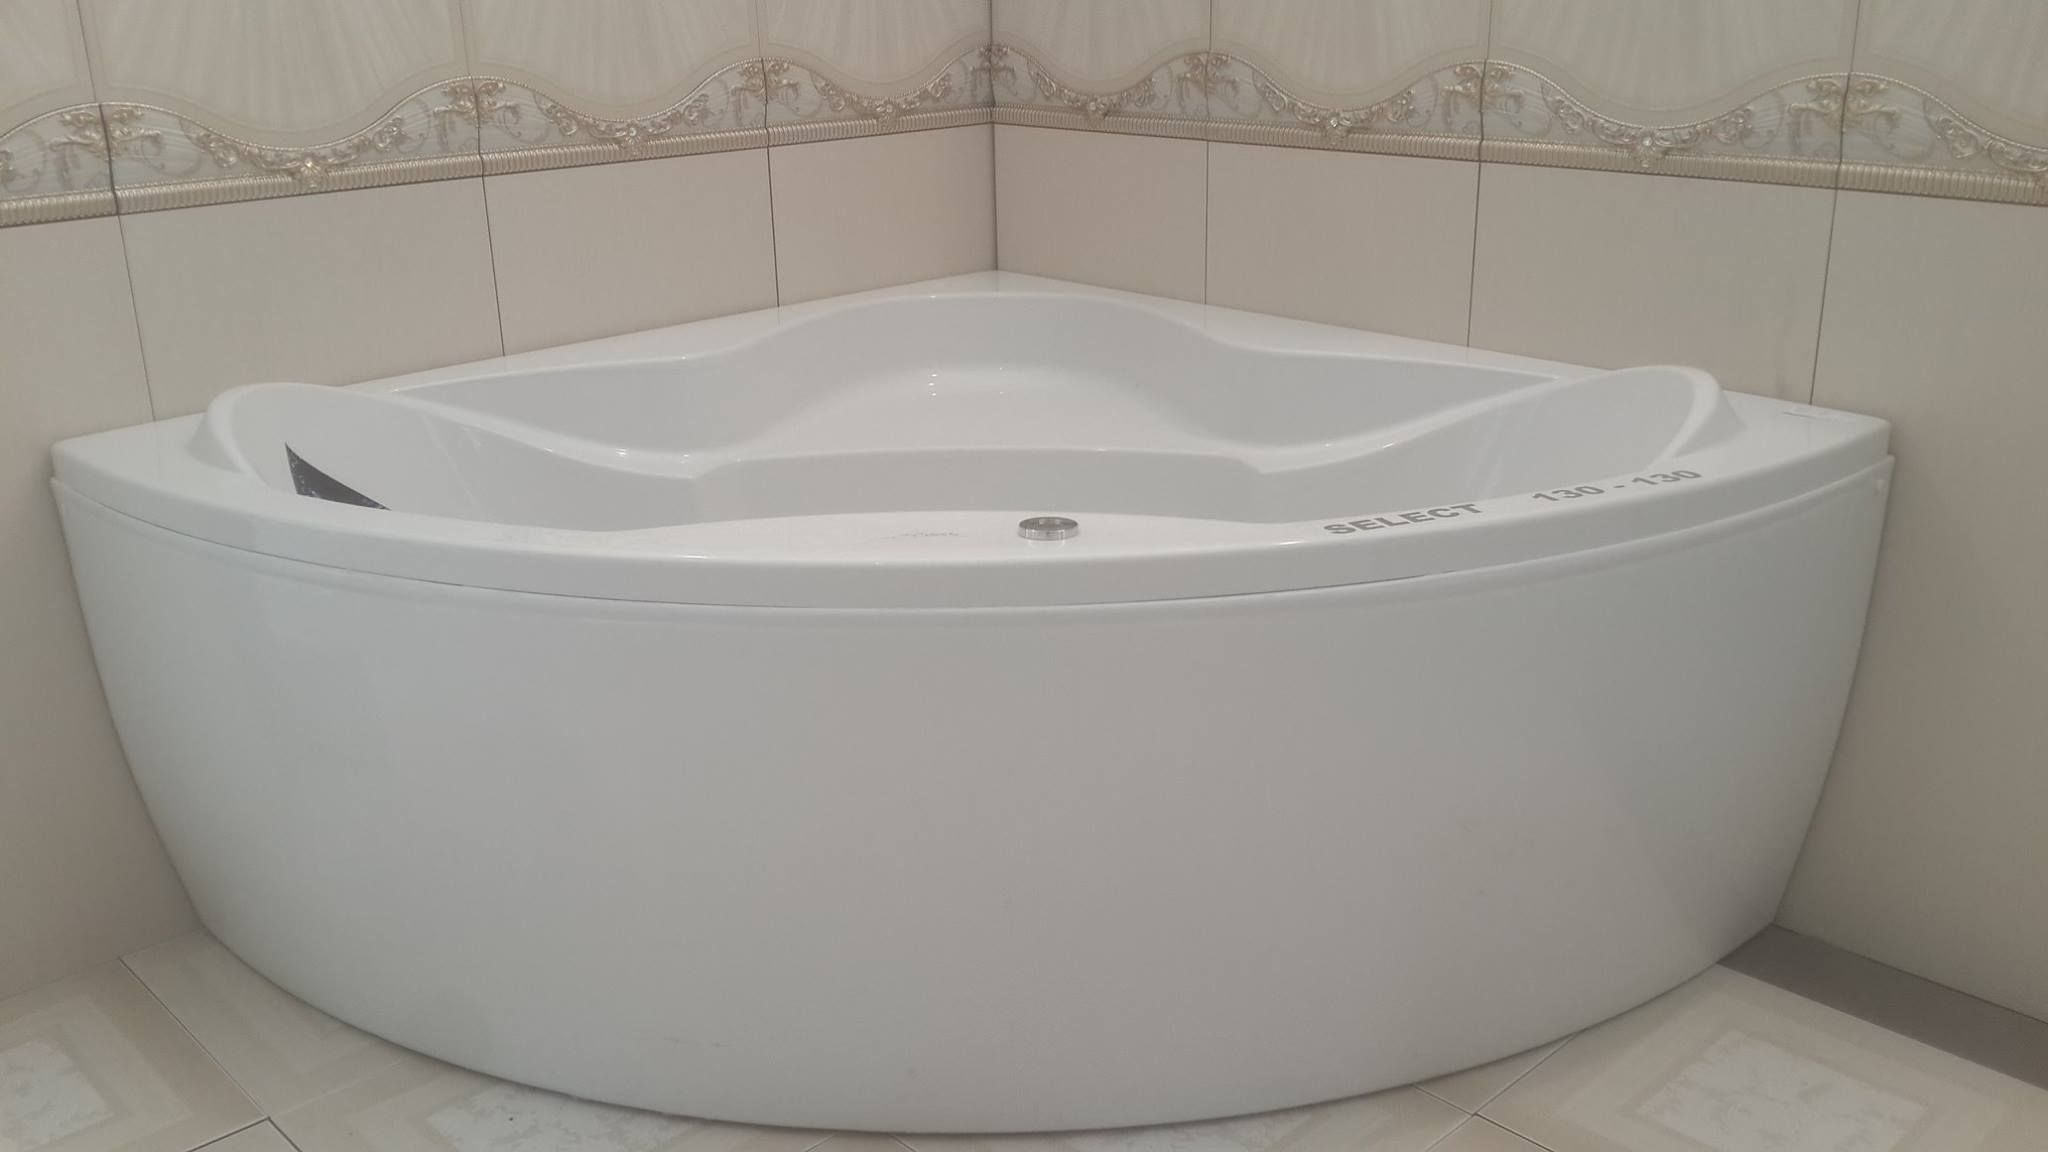 Baignoire Jacuzzi Jacuzzi Angulaire Hedro Hedro Select Sensoria